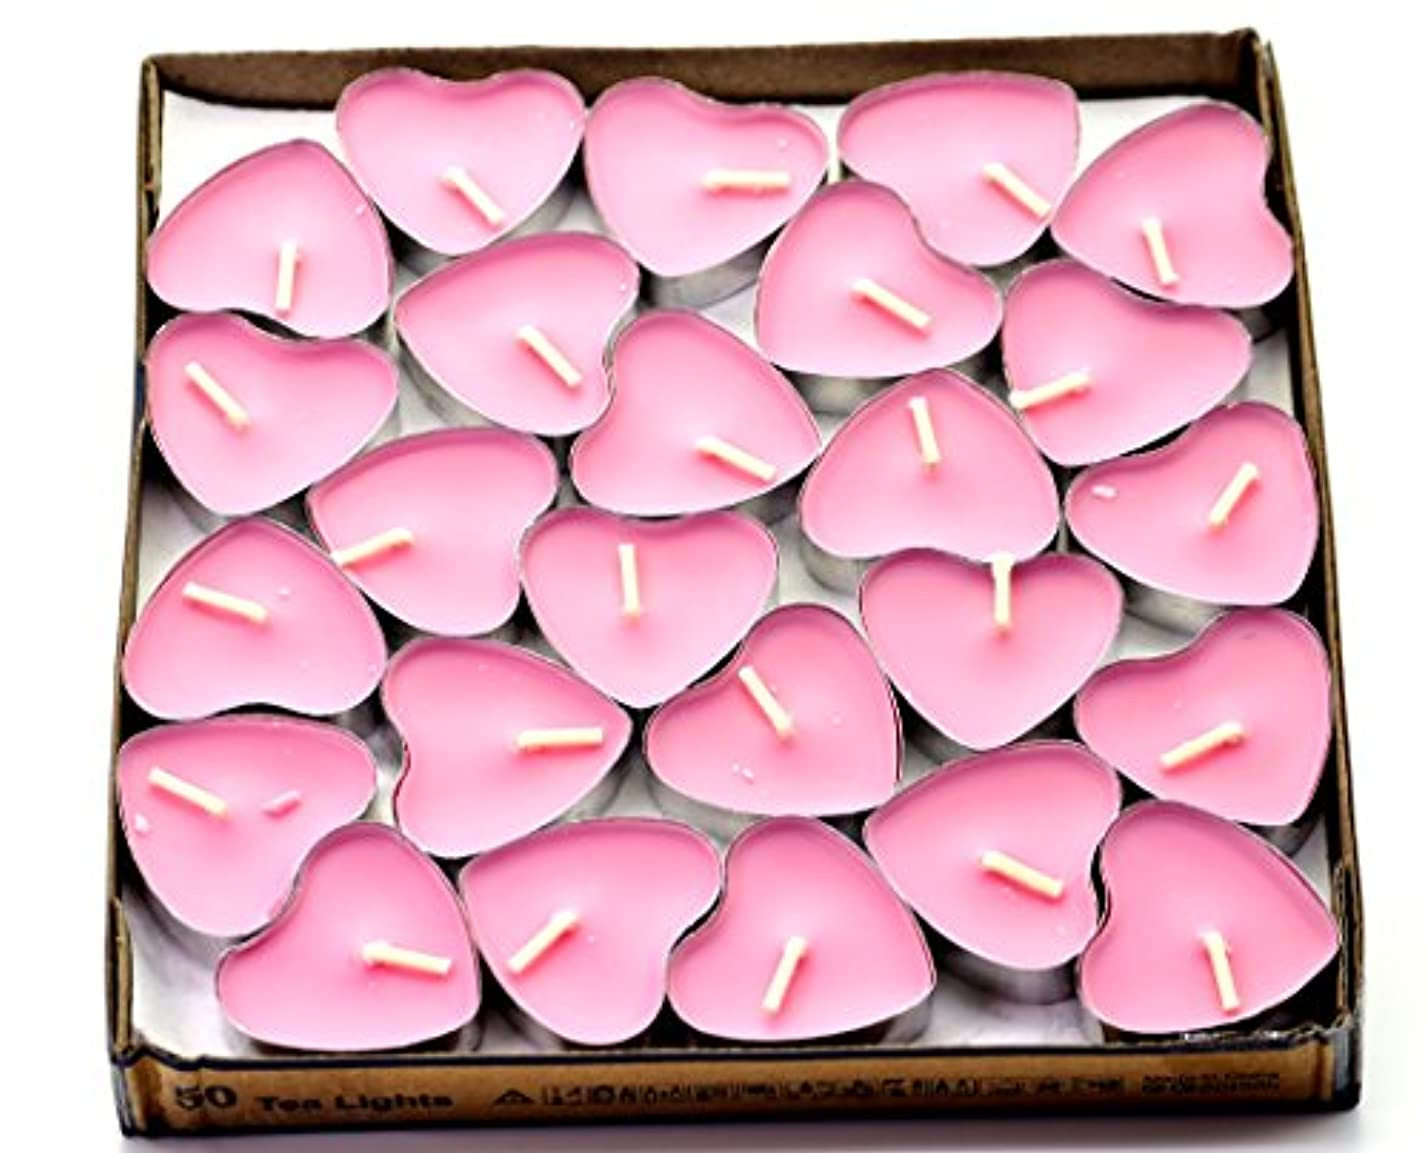 賛美歌後継オリエンタル(Pink(rose)) - Creationtop Scented Candles Tea Lights Mini Hearts Home Decor Aroma Candles Set of 50 pcs mini...